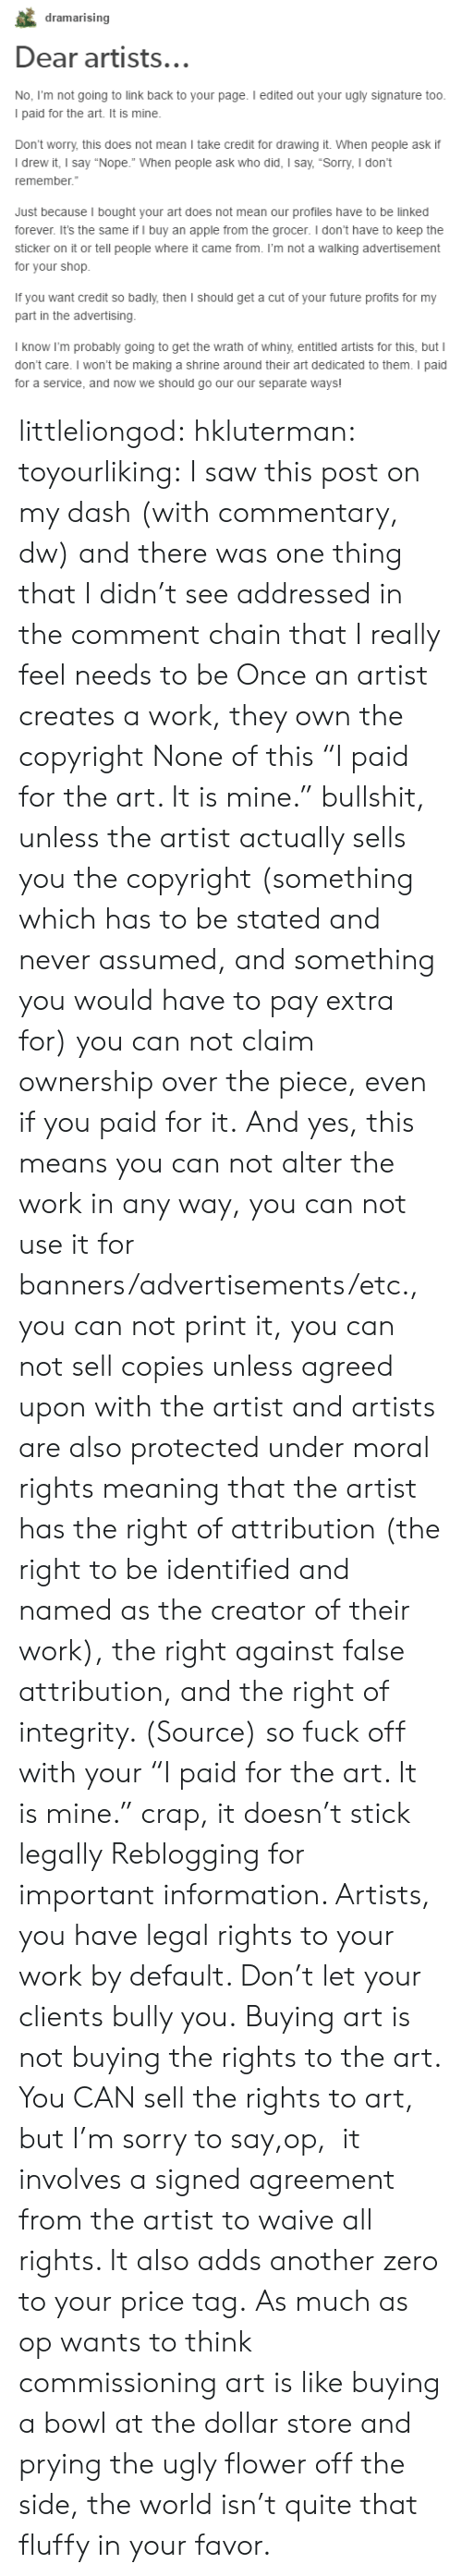 """banners: dramarising  Dear artists..  No, Fm not going to link back to your page. I edited out your ugly signature too  I paid for the art. It is mine.  Don't worry, this does not mean I take credit for drawing it. When people ask if  I drew it, I say """"Nope."""" When people ask who did, I say, """"Sorry, I don't  remember.  Just because I bought your art does not mean our profiles have to be linked  forever. It's the same if I buy an apple from the grocer. I don't have to keep the  sticker on it or tell people where it came from. I'm not a walking advertisement  for your shop.  If you want credit so badly,then I should get a cut of your tuture profmts for my  part in the advertising  I know I'm probably going to get the wrath of whiny, entitled artists for this, but I  don't care. I won't be making a shrine around their art dedicated to them. I paid  for a service, and now we should go our our separate ways! littleliongod: hkluterman:  toyourliking:  I saw this post on my dash (with commentary, dw) and there was one thing that I didn't see addressed in the comment chain that I really feel needs to be Once an artist creates a work, they own the copyright None of this""""I paid for the art. It is mine."""" bullshit, unless the artist actually sells you the copyright (something which has to be stated and never assumed, and something you would have to pay extra for) you can not claim ownership over the piece, even if you paid for it. And yes, this means you can not alter the work in any way, you can not use it for banners/advertisements/etc., you can not print it, you can not sell copiesunless agreed upon with the artist and artists are also protected under moral rights meaning that the artist has the right of attribution (the right to be identified and named as the creator of their work), the right against false attribution, and the right of integrity. (Source) so fuck off with your """"I paid for the art. It is mine."""" crap, it doesn't stick legally  Reblogging for important informat"""